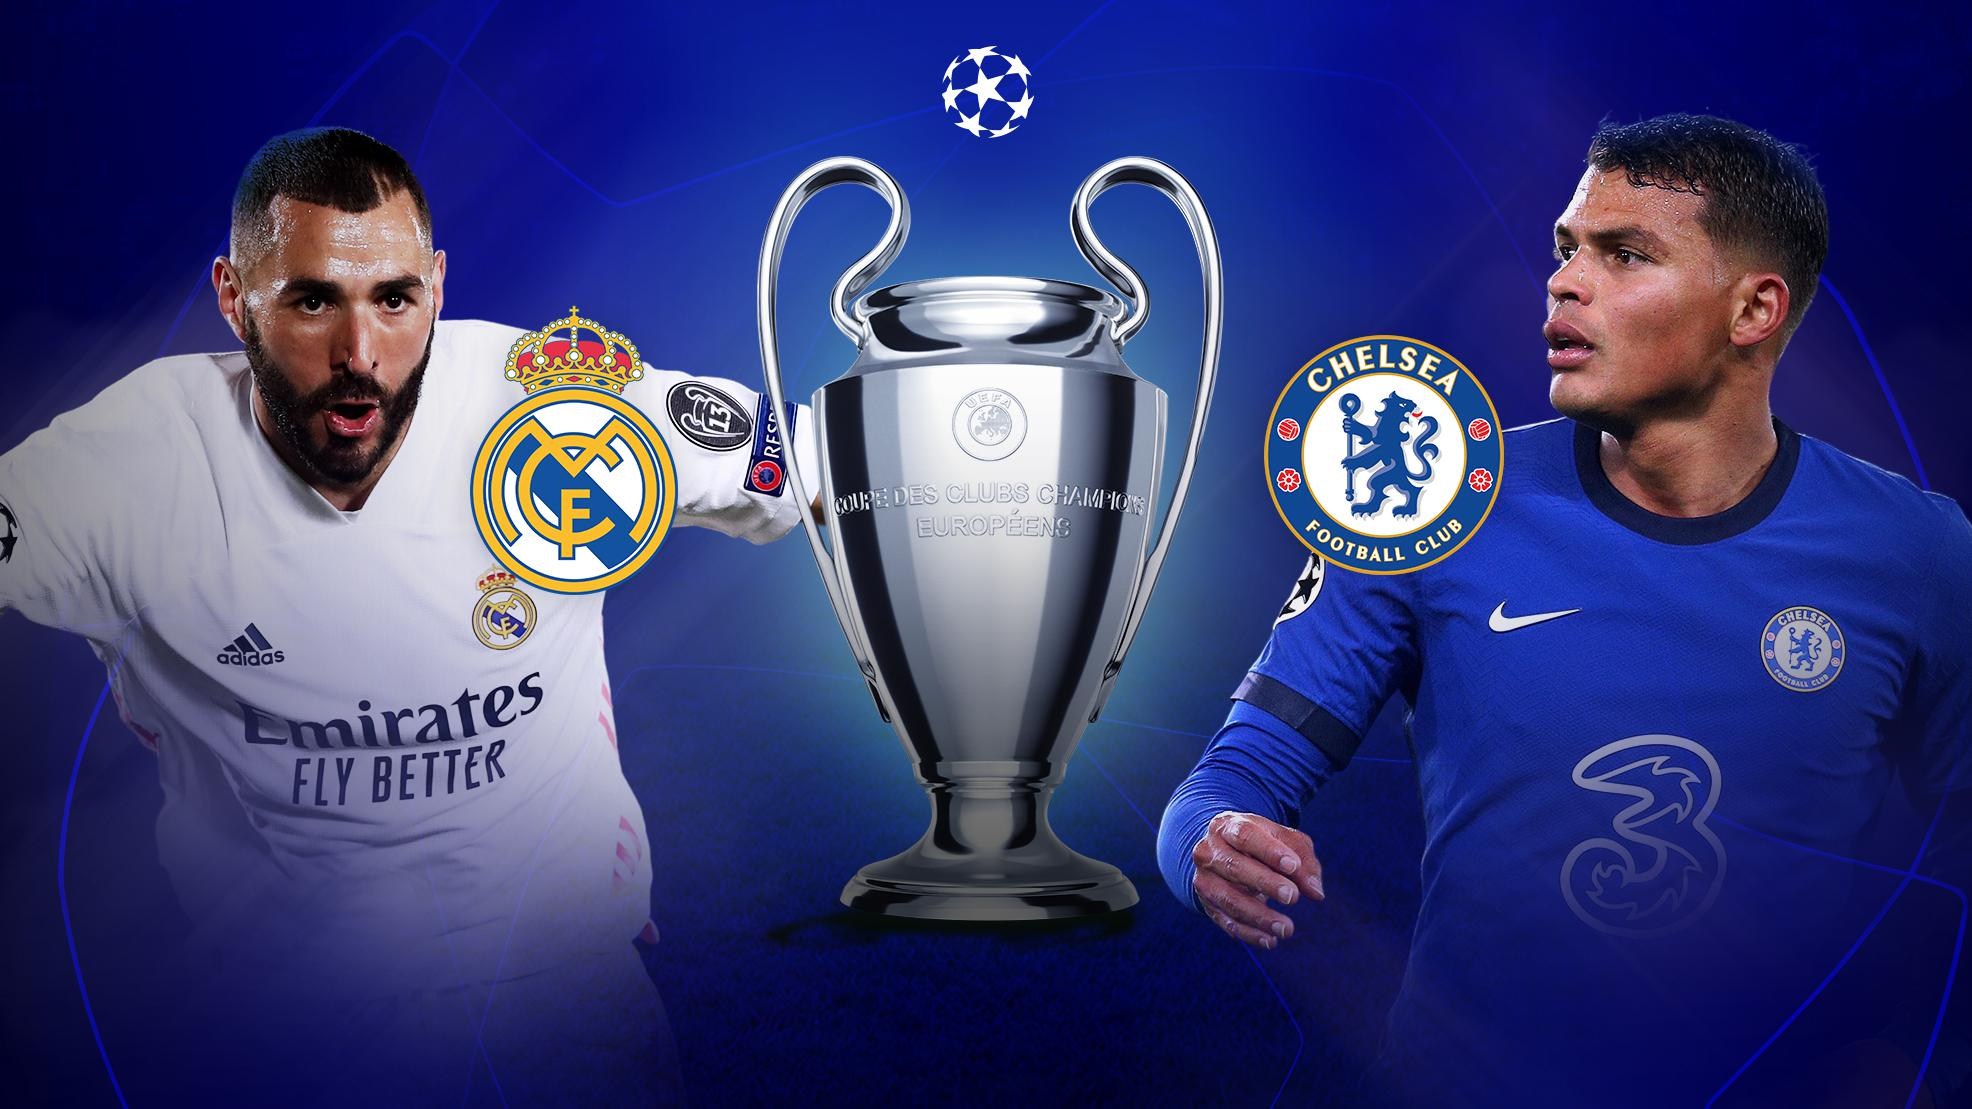 Chelsea y Real Madrid se disputan el boleto restante a la final de la Champions League: hora, TV y formaciones